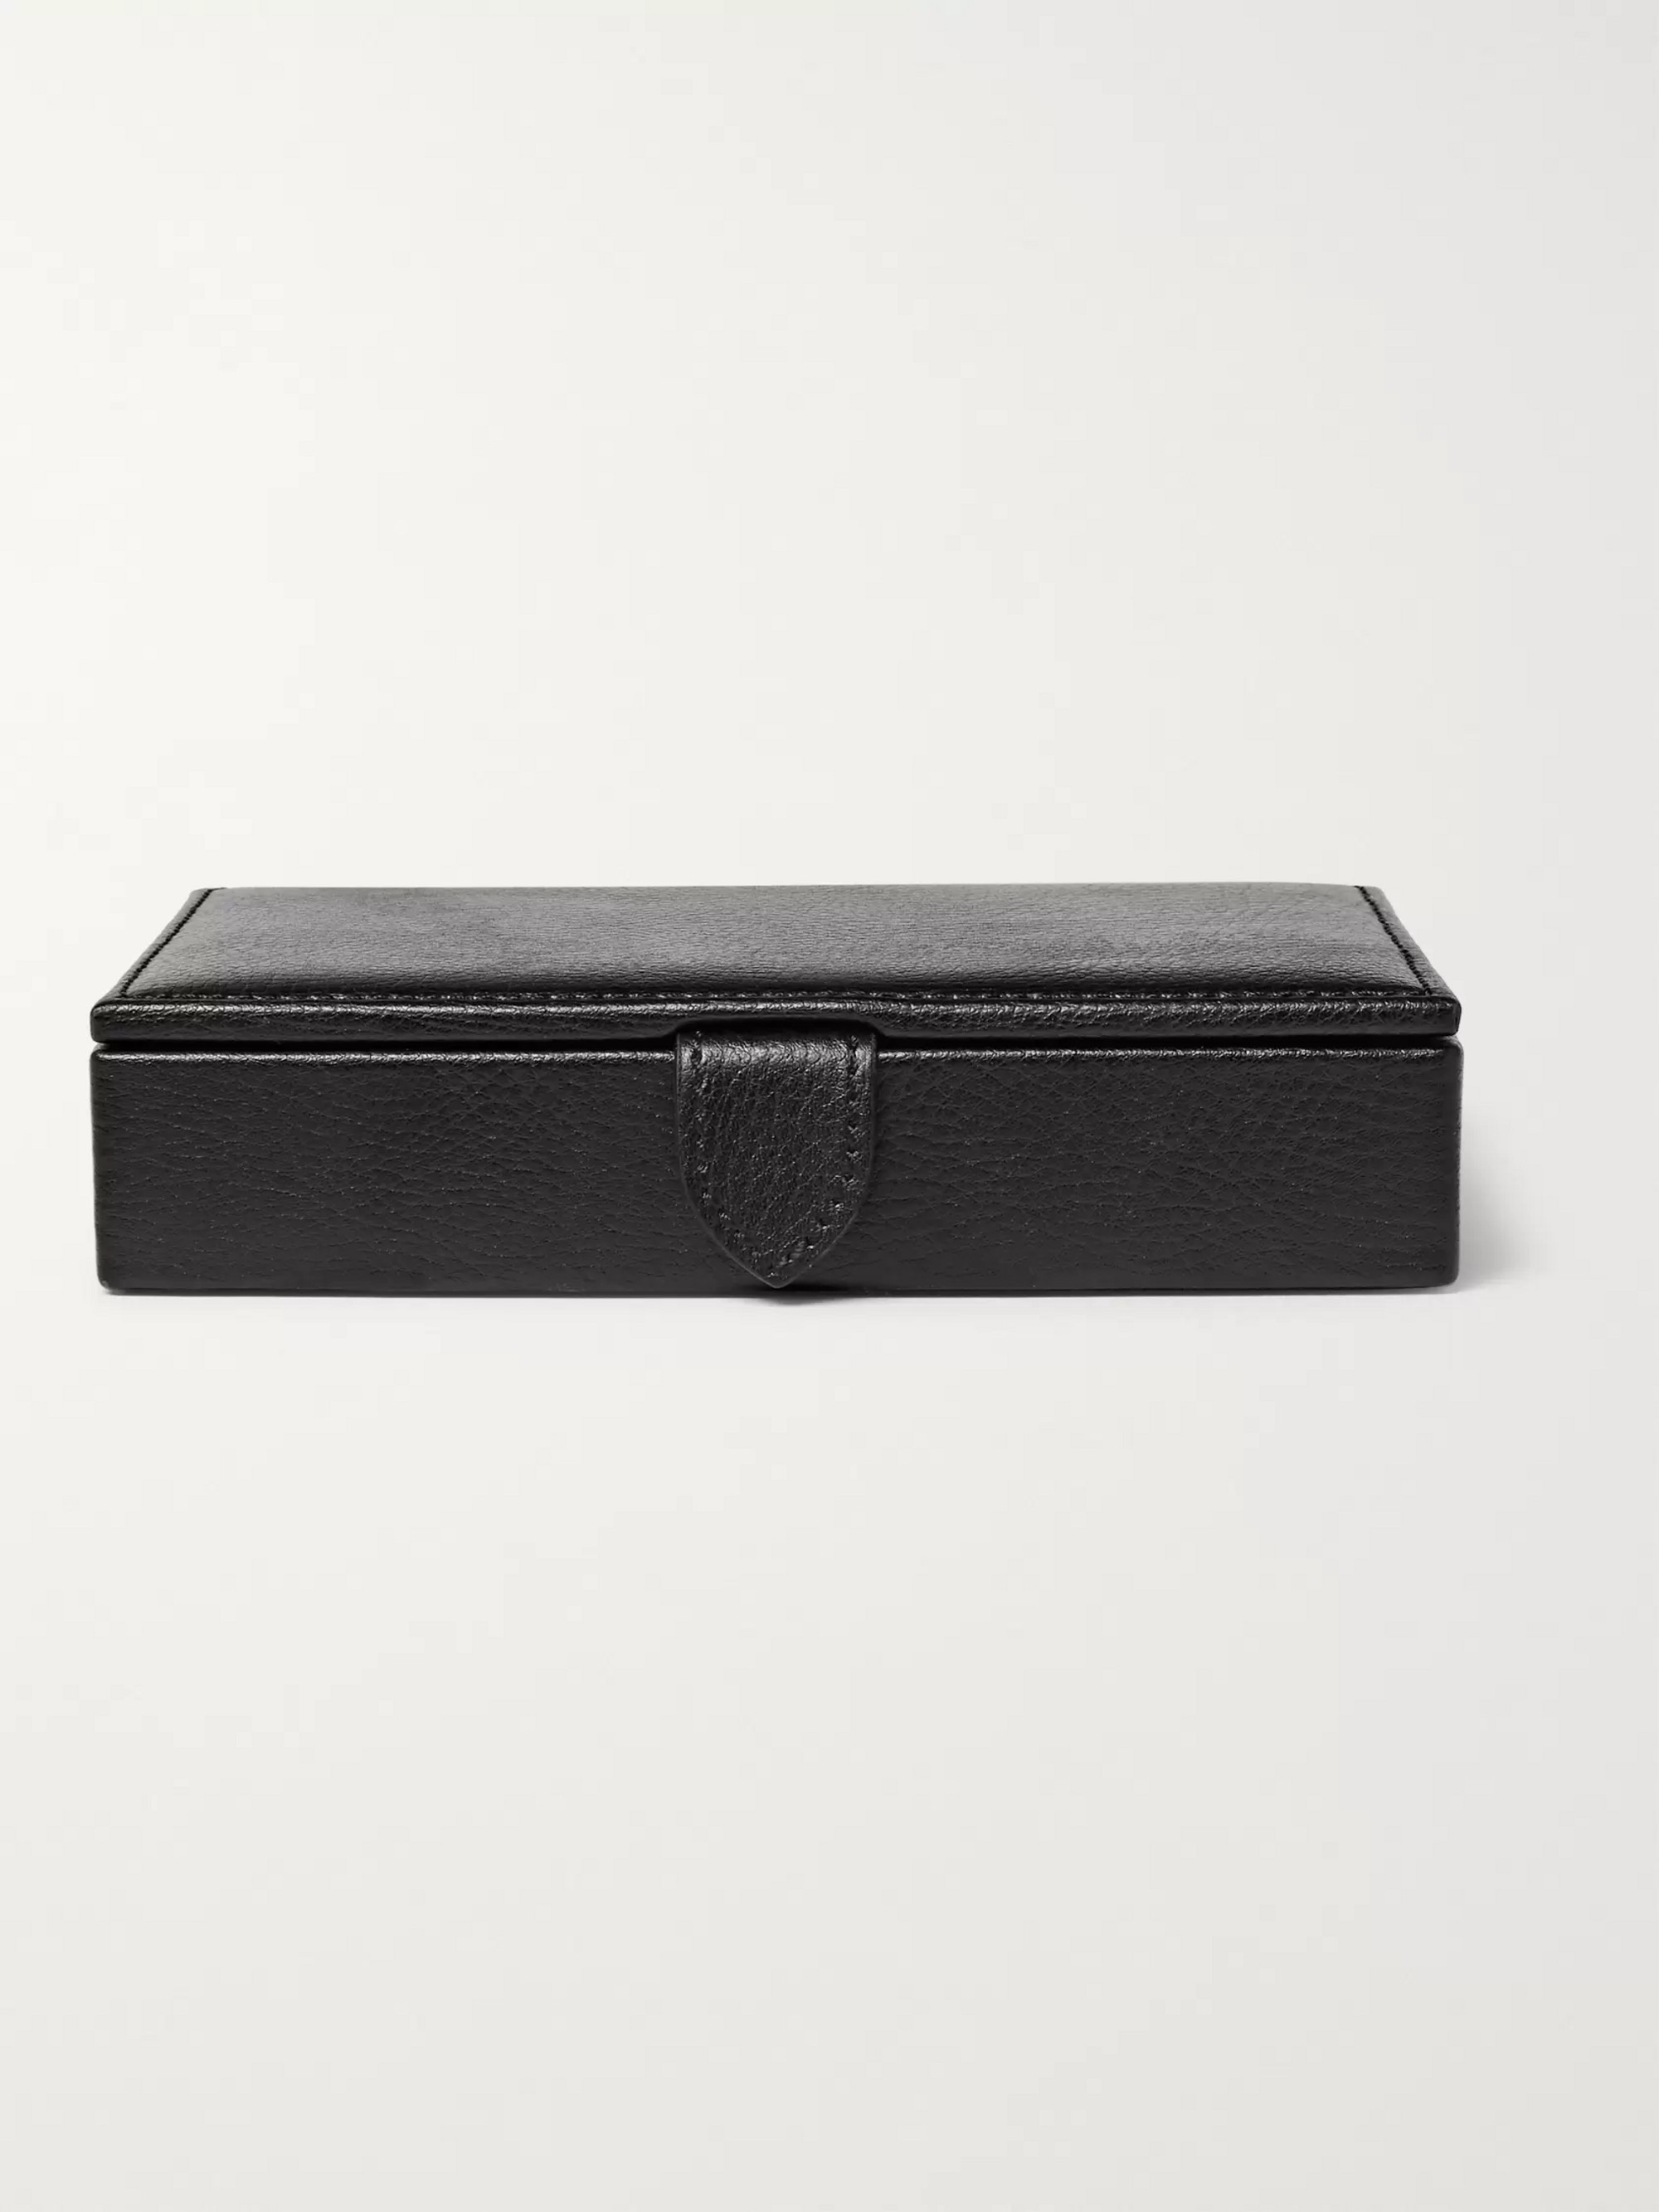 WOLF Blake Full-Grain Leather Cufflink Case